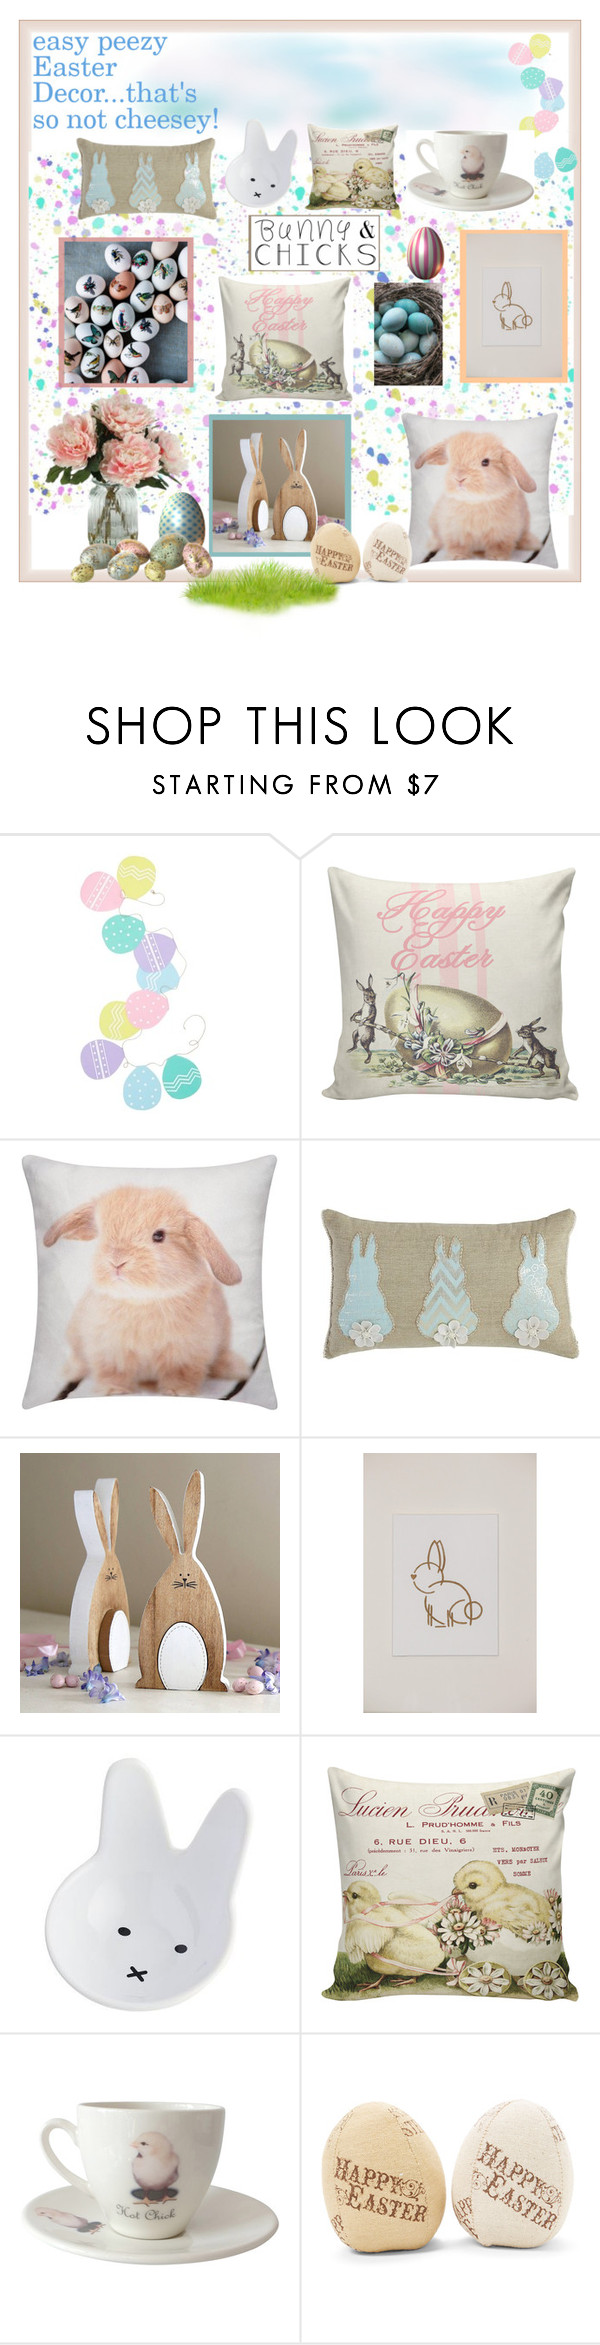 """Easy Peezy Easter"" by jennross76 ❤ liked on Polyvore featuring interior, interiors, interior design, home, home decor, interior decorating, Levtex, Pier 1 Imports, Outlandish Creations and bunnieschicks"